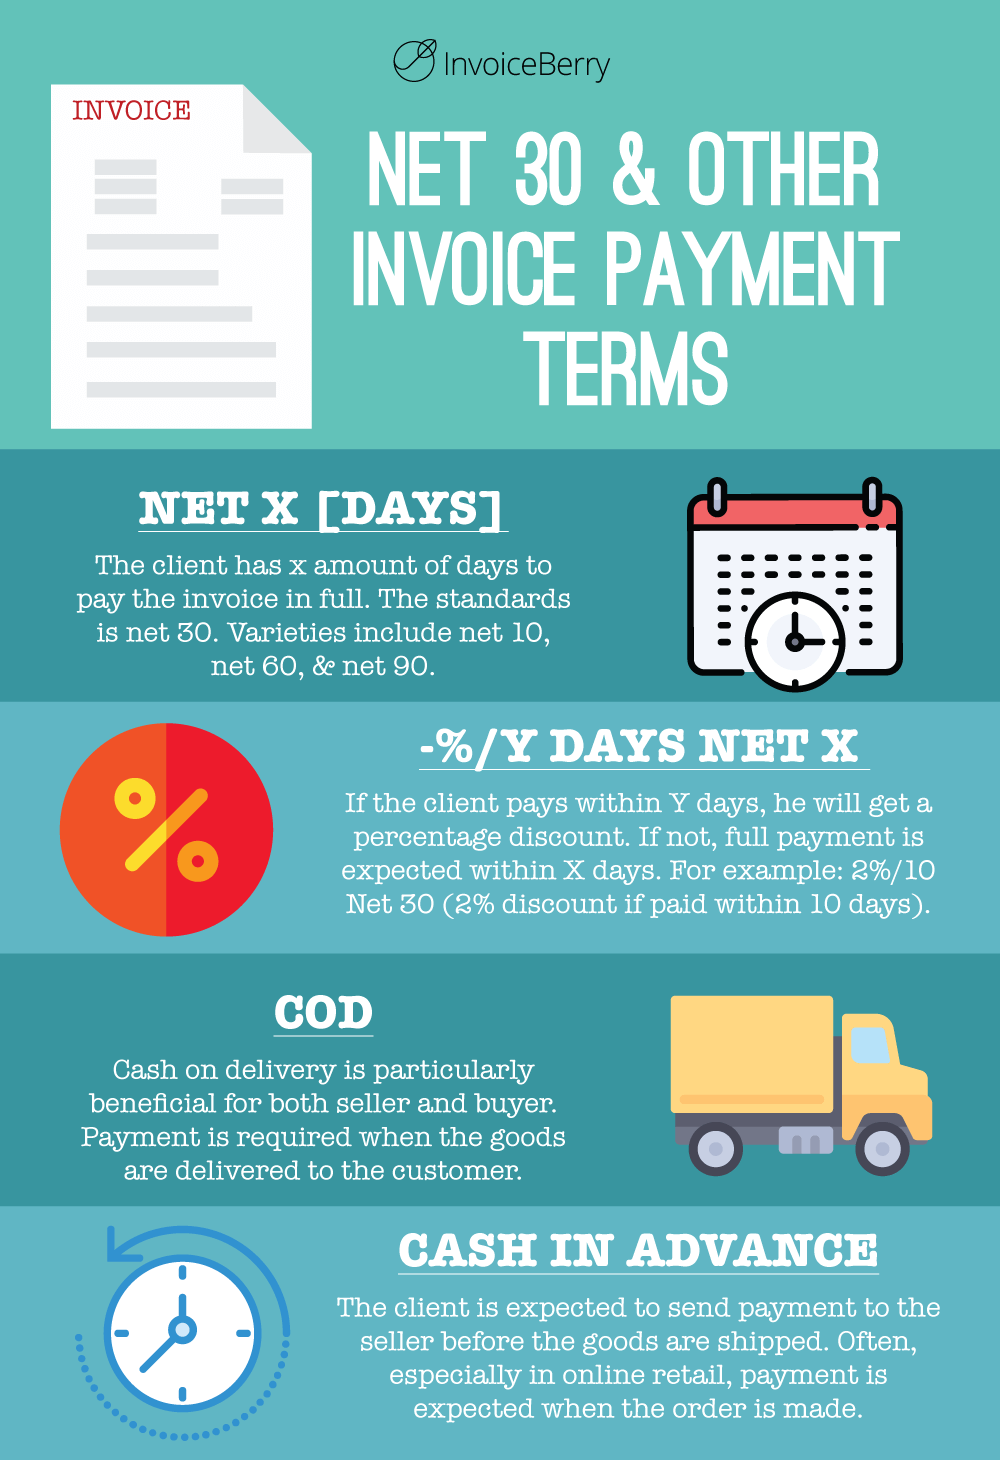 These are the four categories of invoice payment terms that are important for small businesses and freelancers